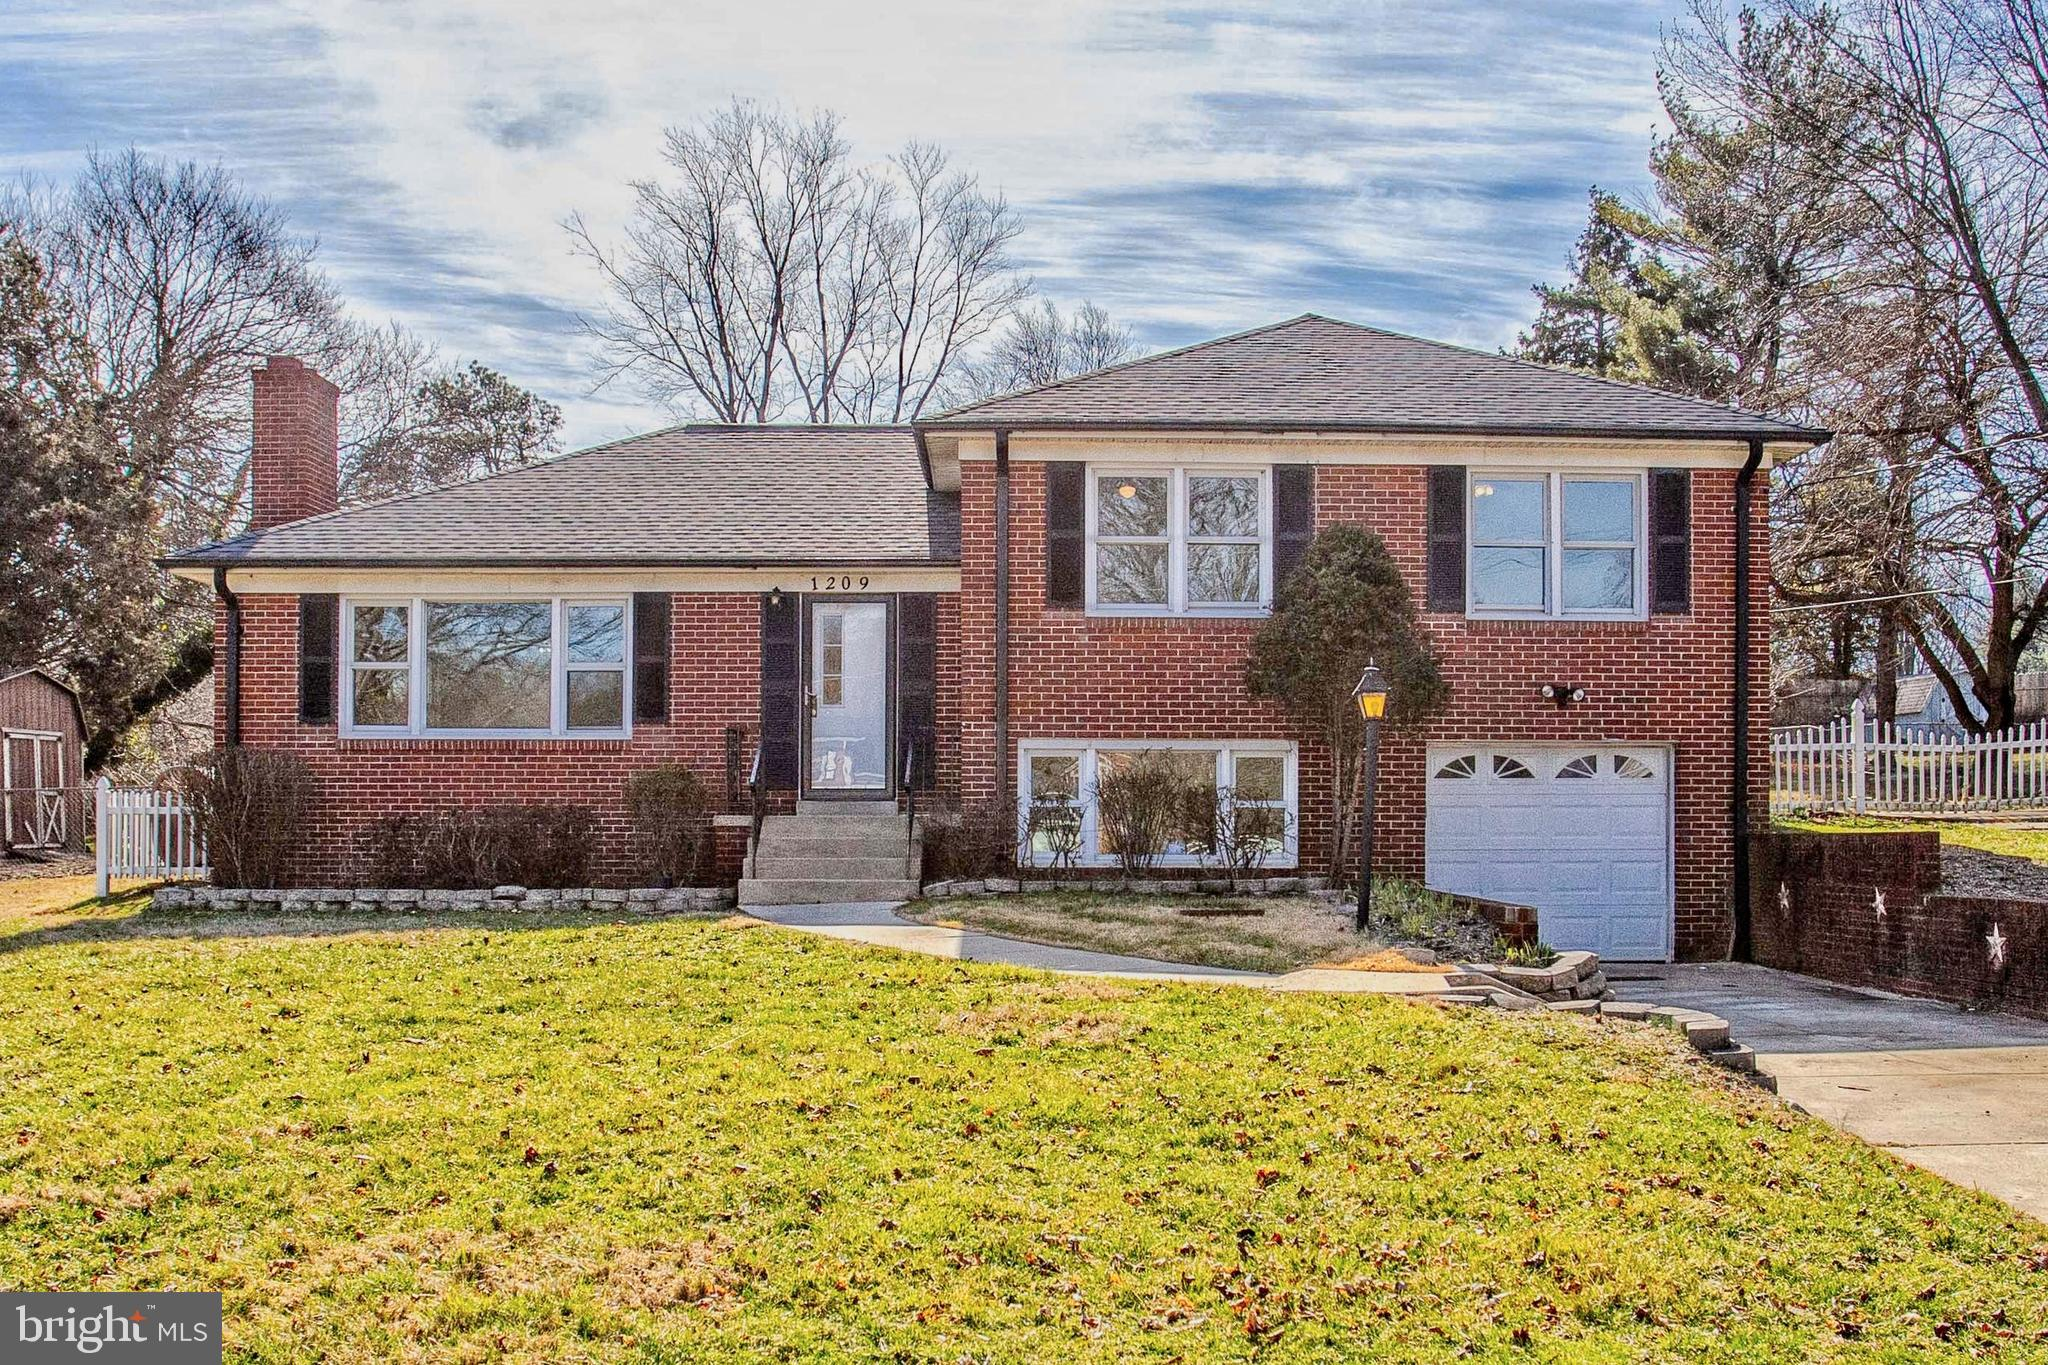 1209 MILLGROVE ROAD, SILVER SPRING, MD 20905